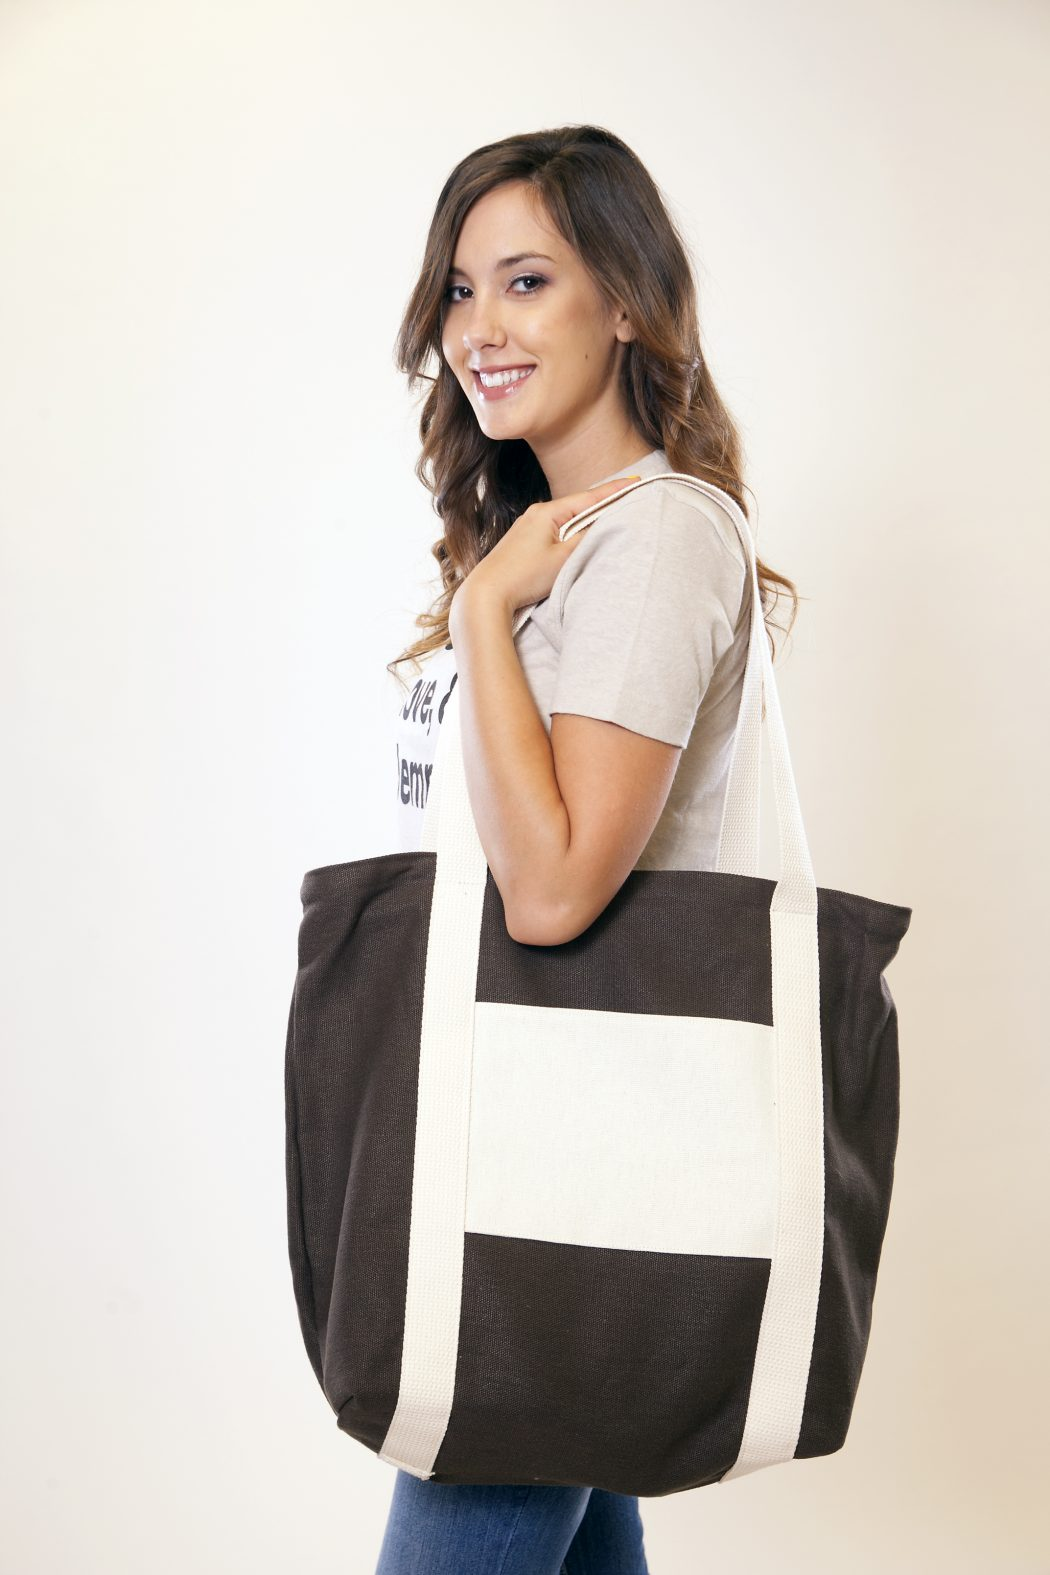 Super-sized-bags6 5 Hottest Spring & Summer Accessories Fashion Trends in 2020